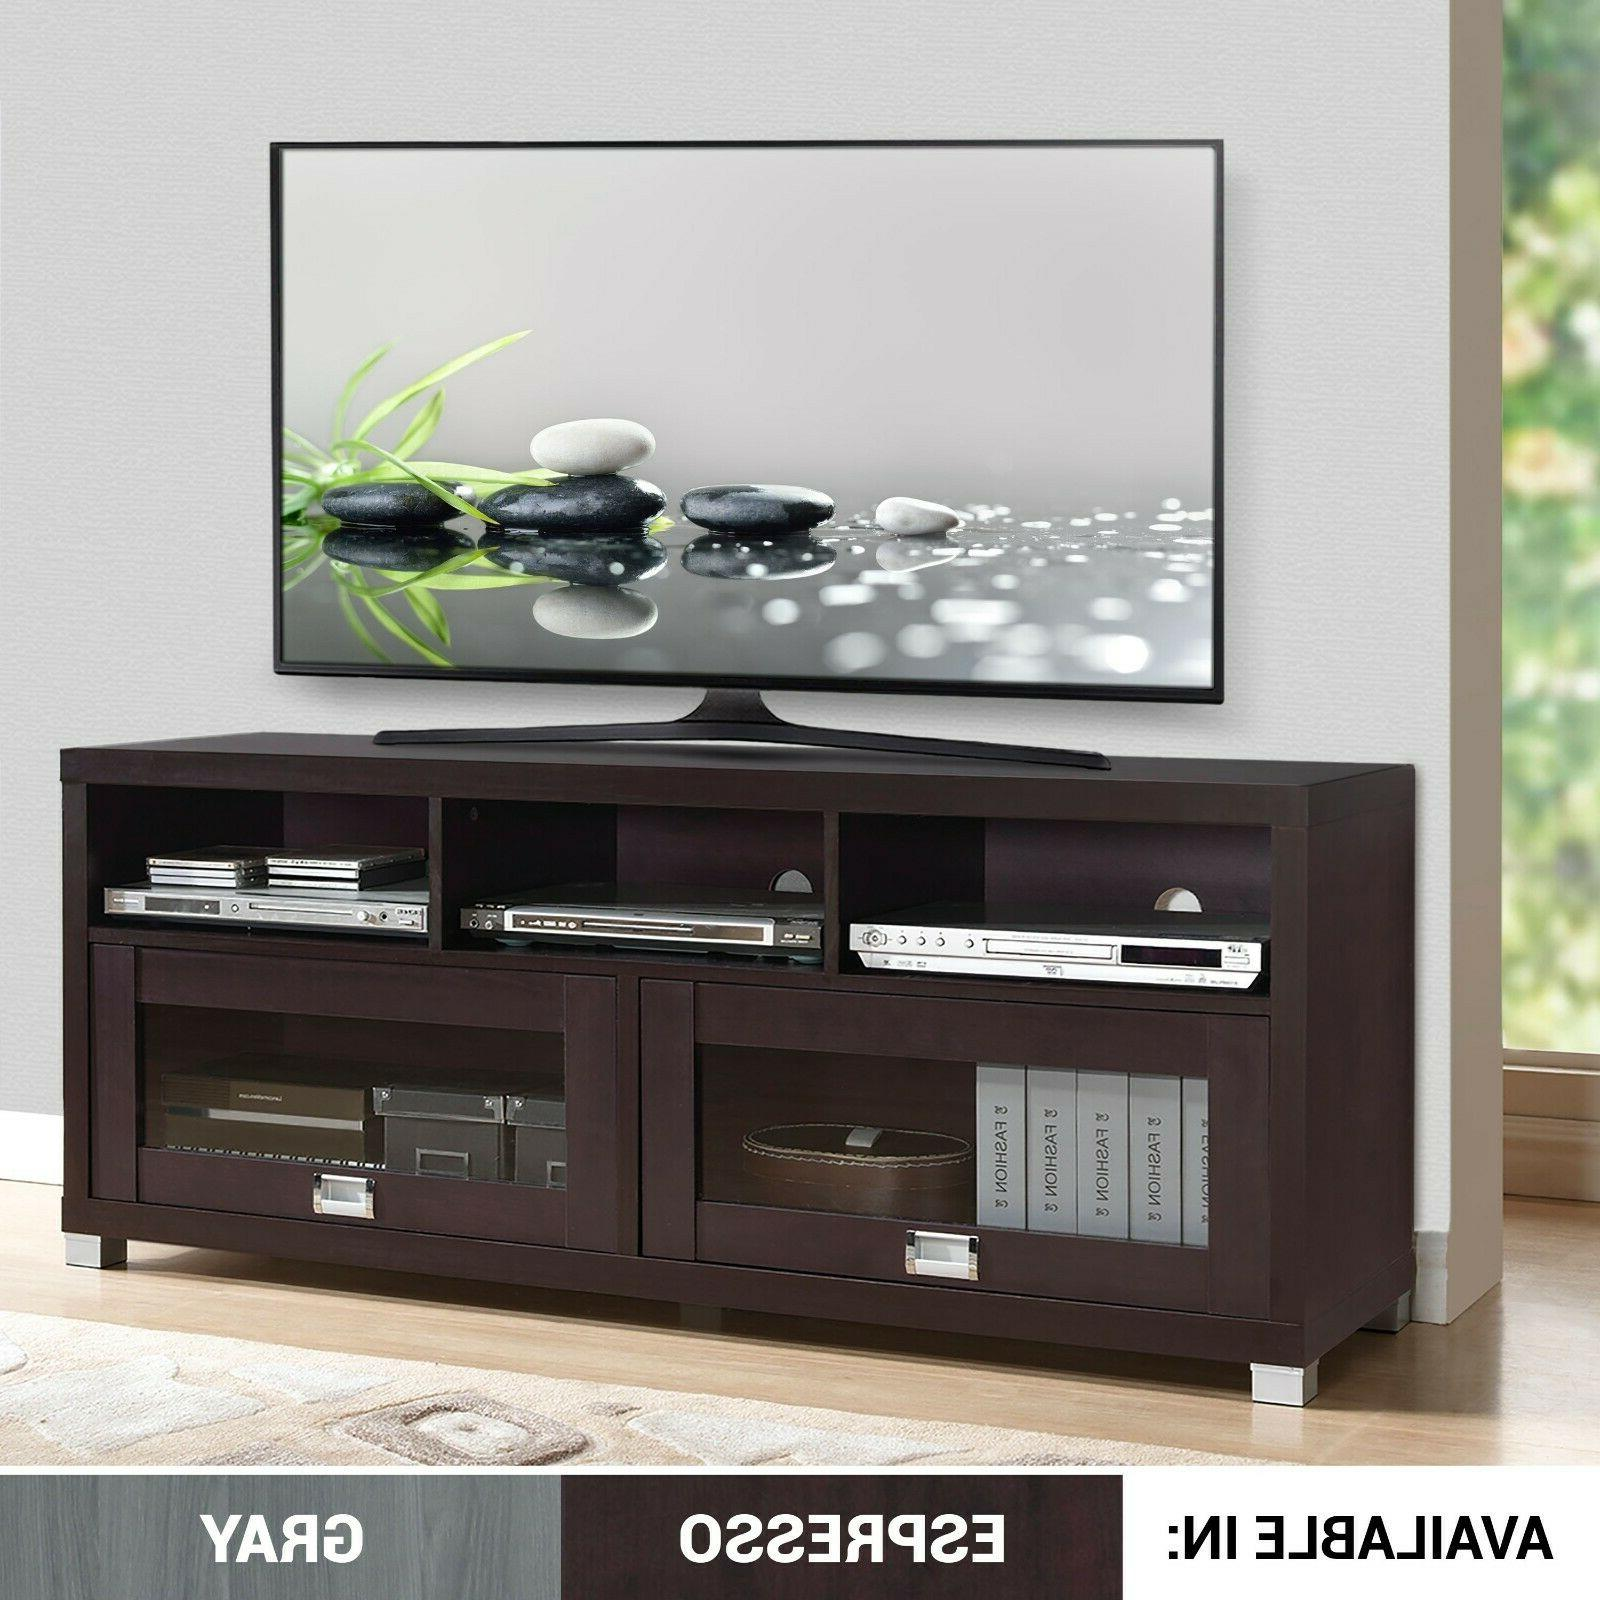 TV Inch Flat Home Center